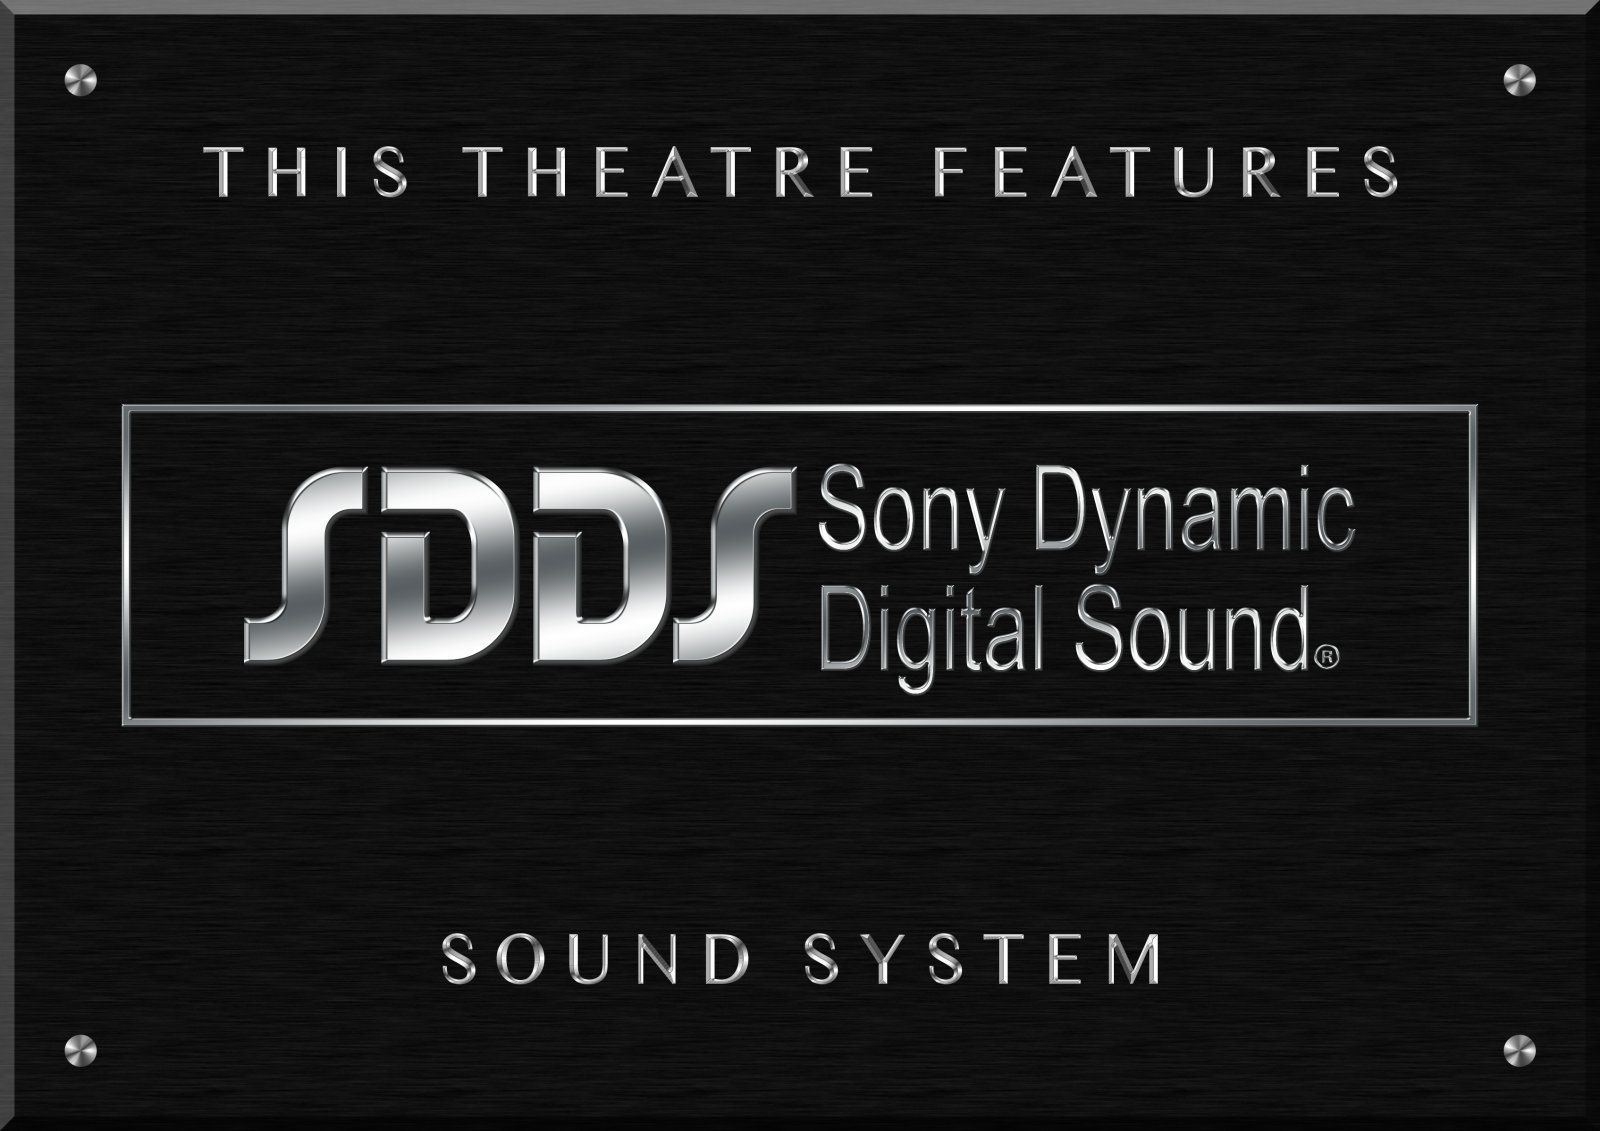 sony dynamic digital sound in selected theatres logo